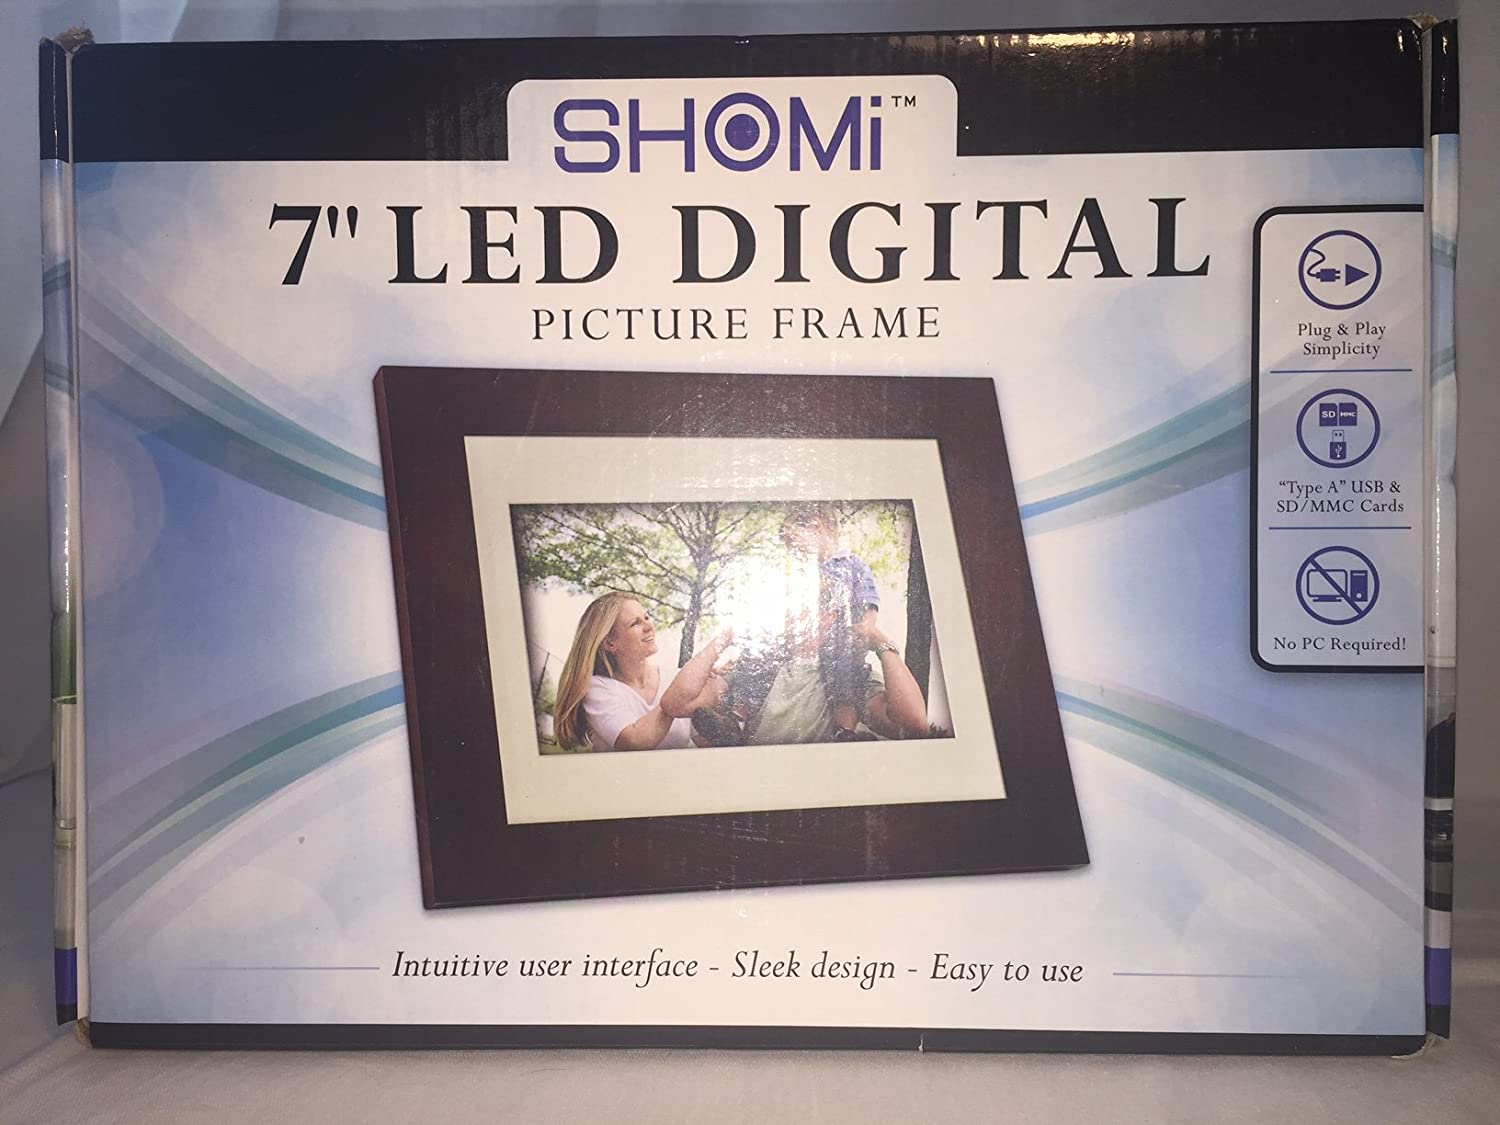 Shomi 7 Led Digital Picture Frame Amazonca Electronics